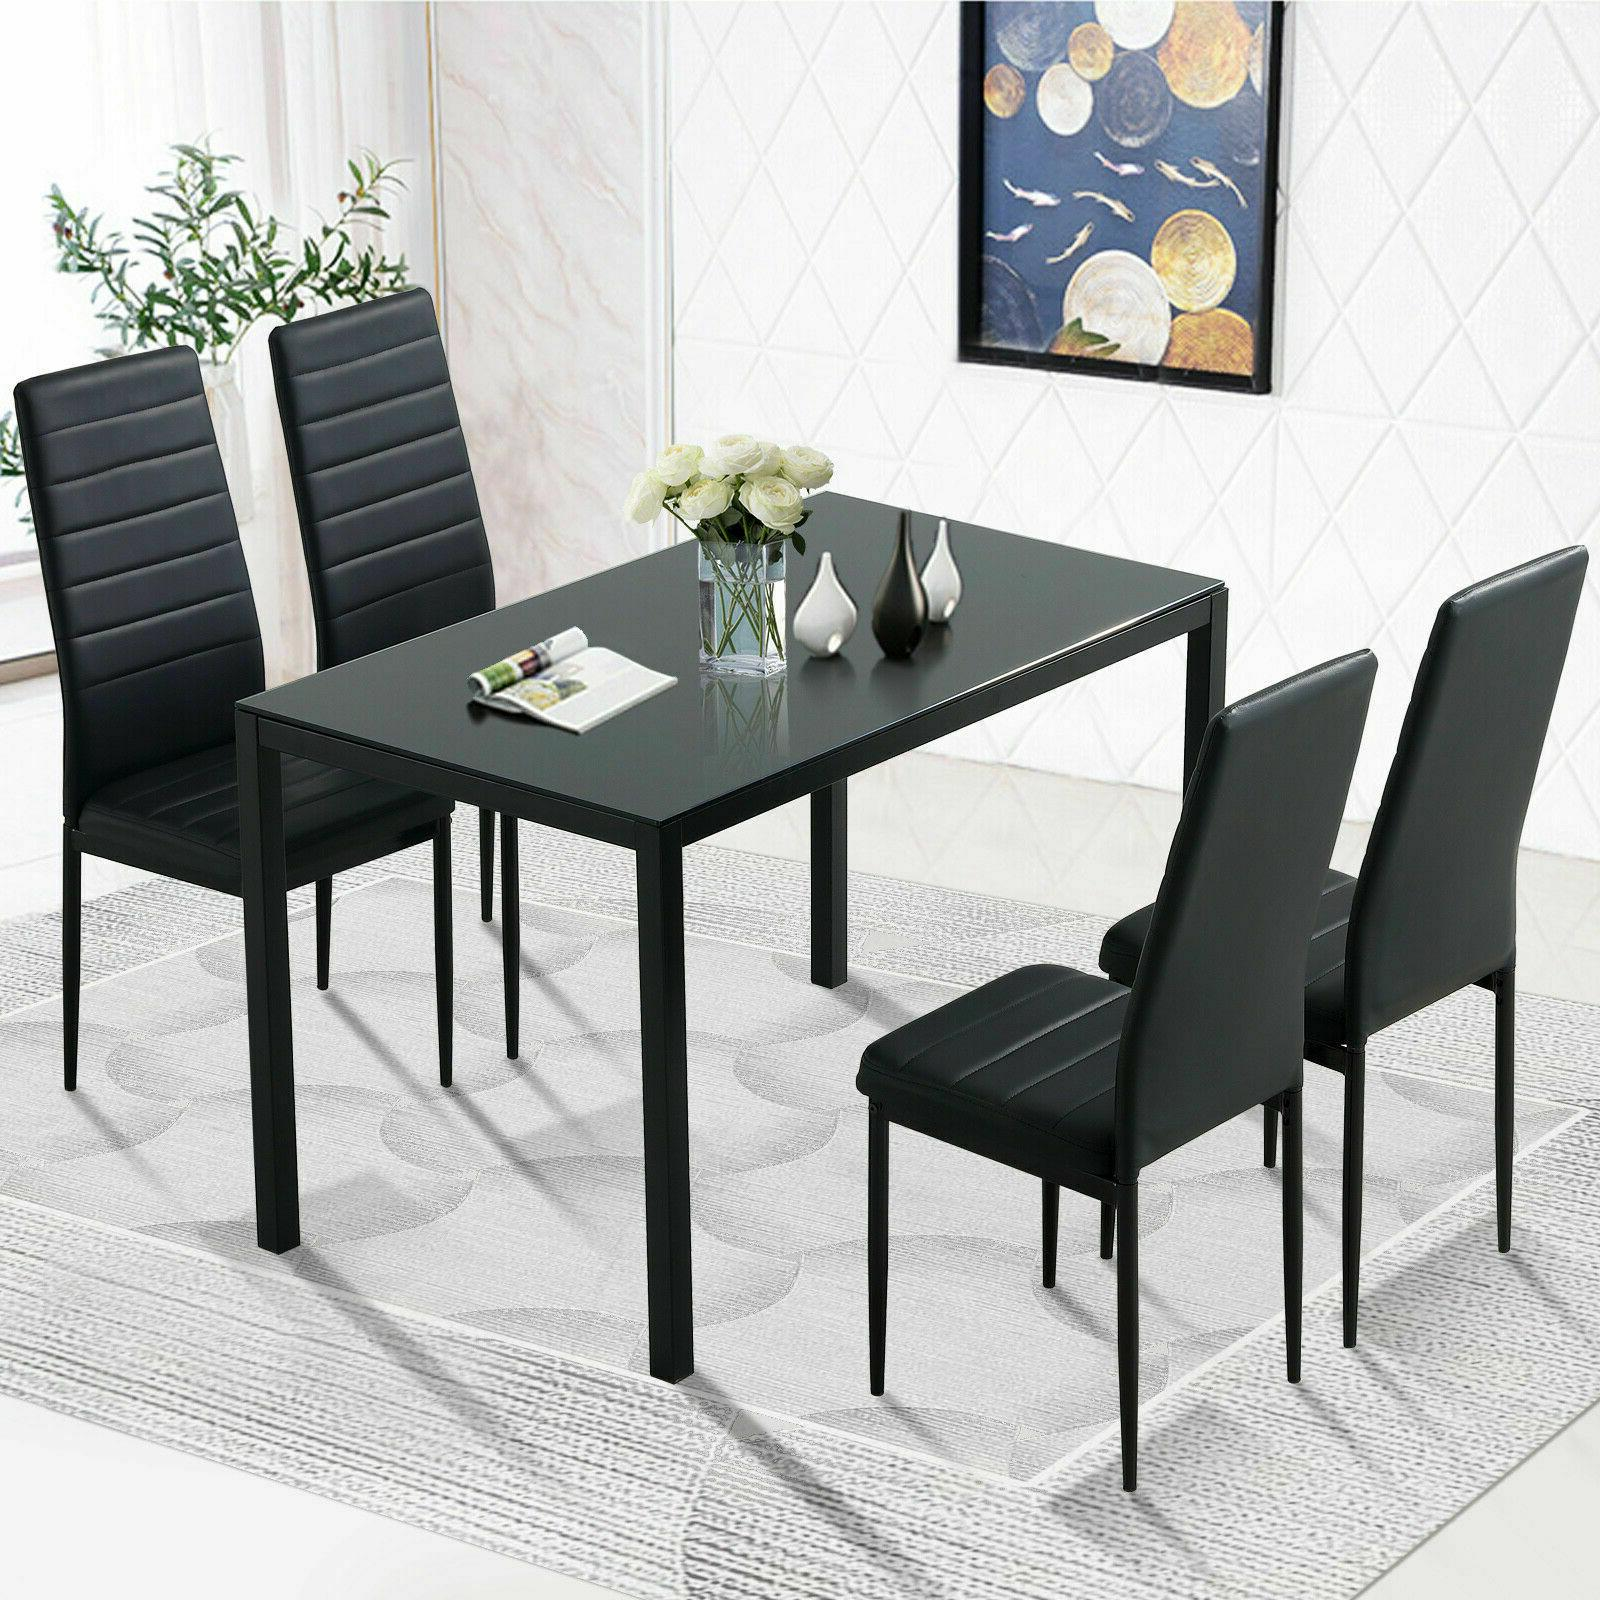 black 5pc kitchen dining table set tempered